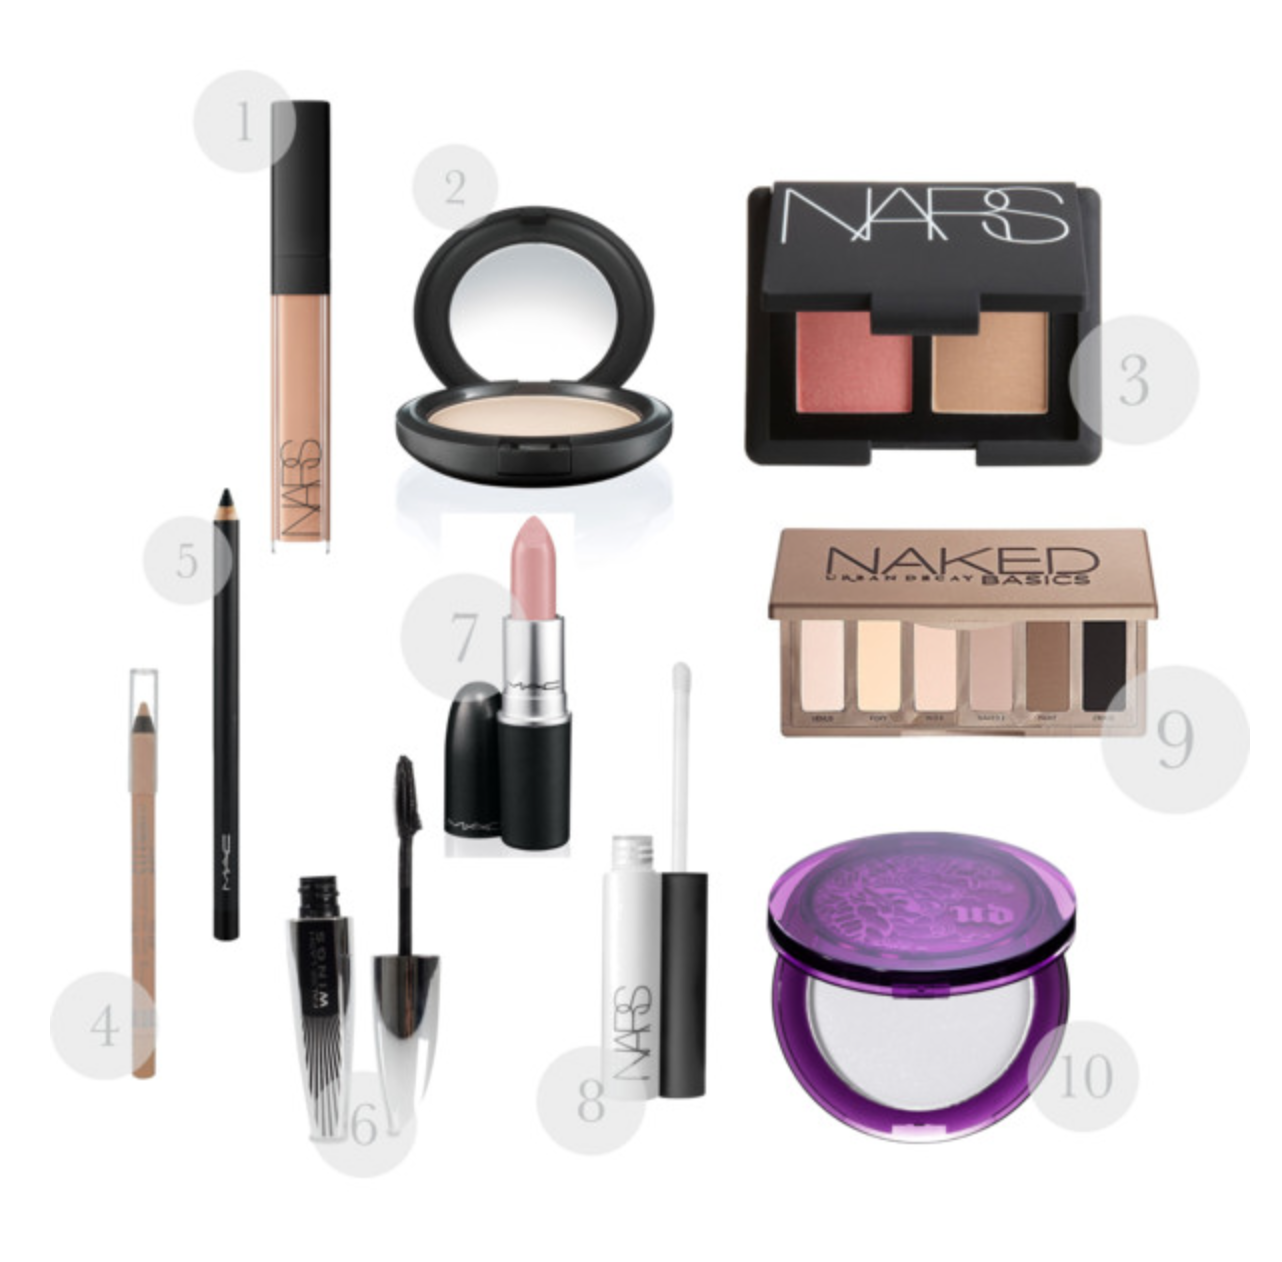 10 essential beauty products